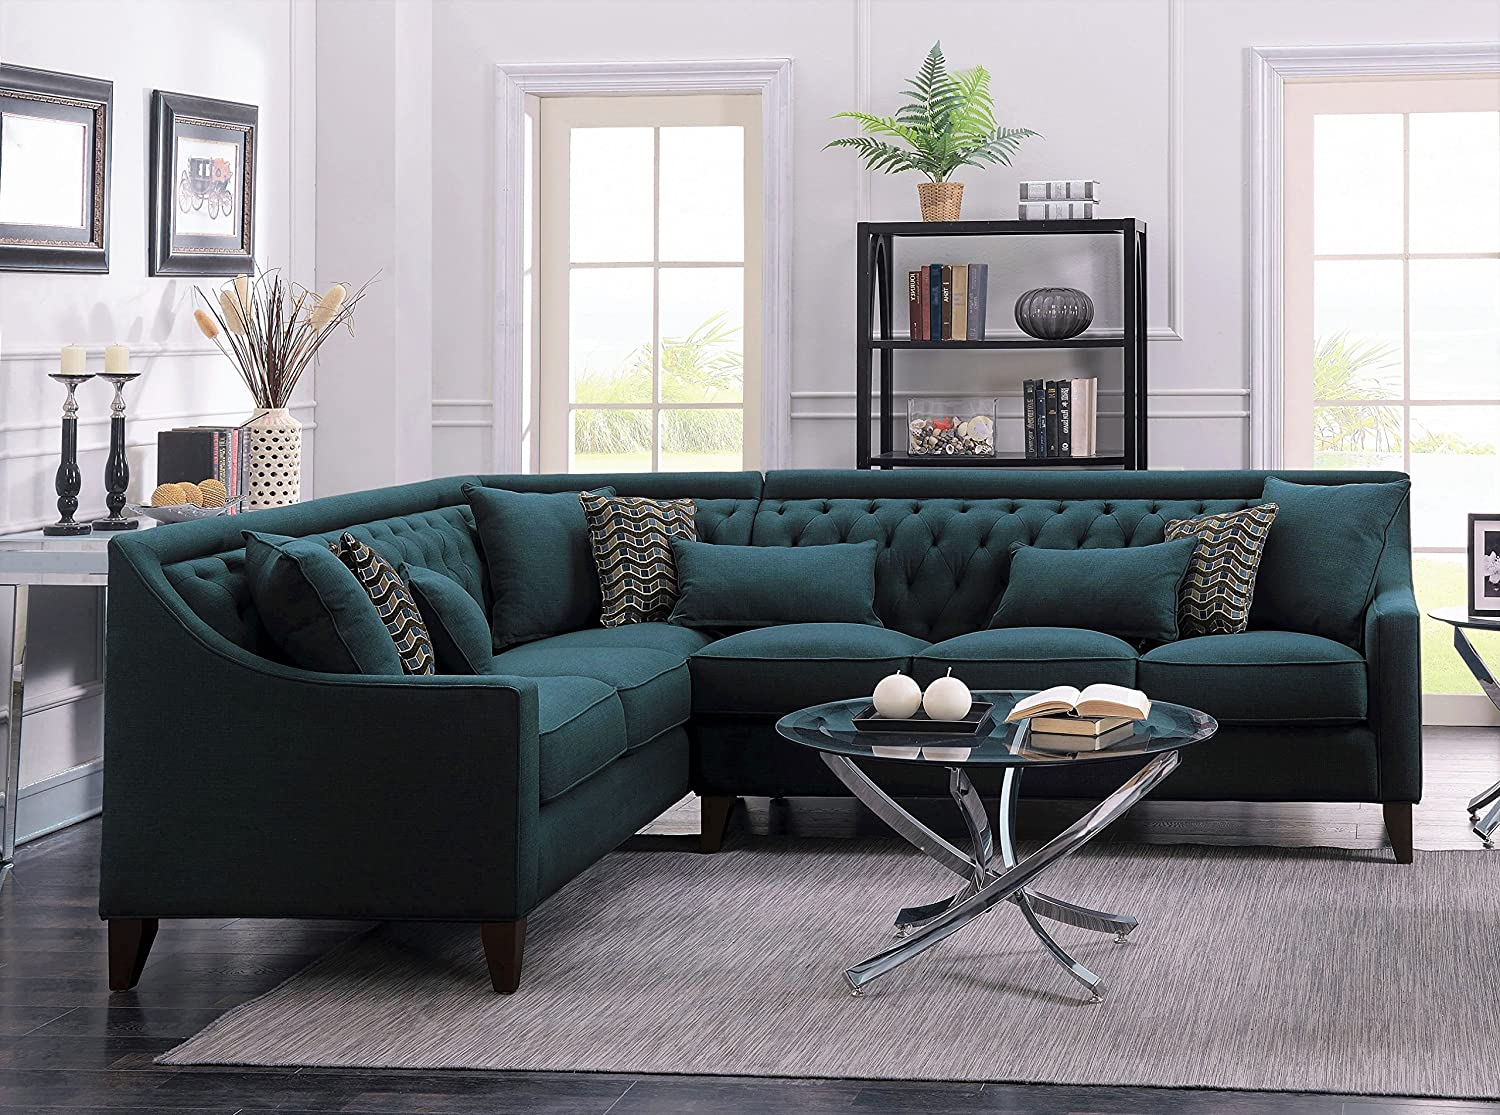 Iconic Home Chic Home Aberdeen Linen Tufted Down Mix Modern Contemporary Left Facing Sectional Sofa, Teal,